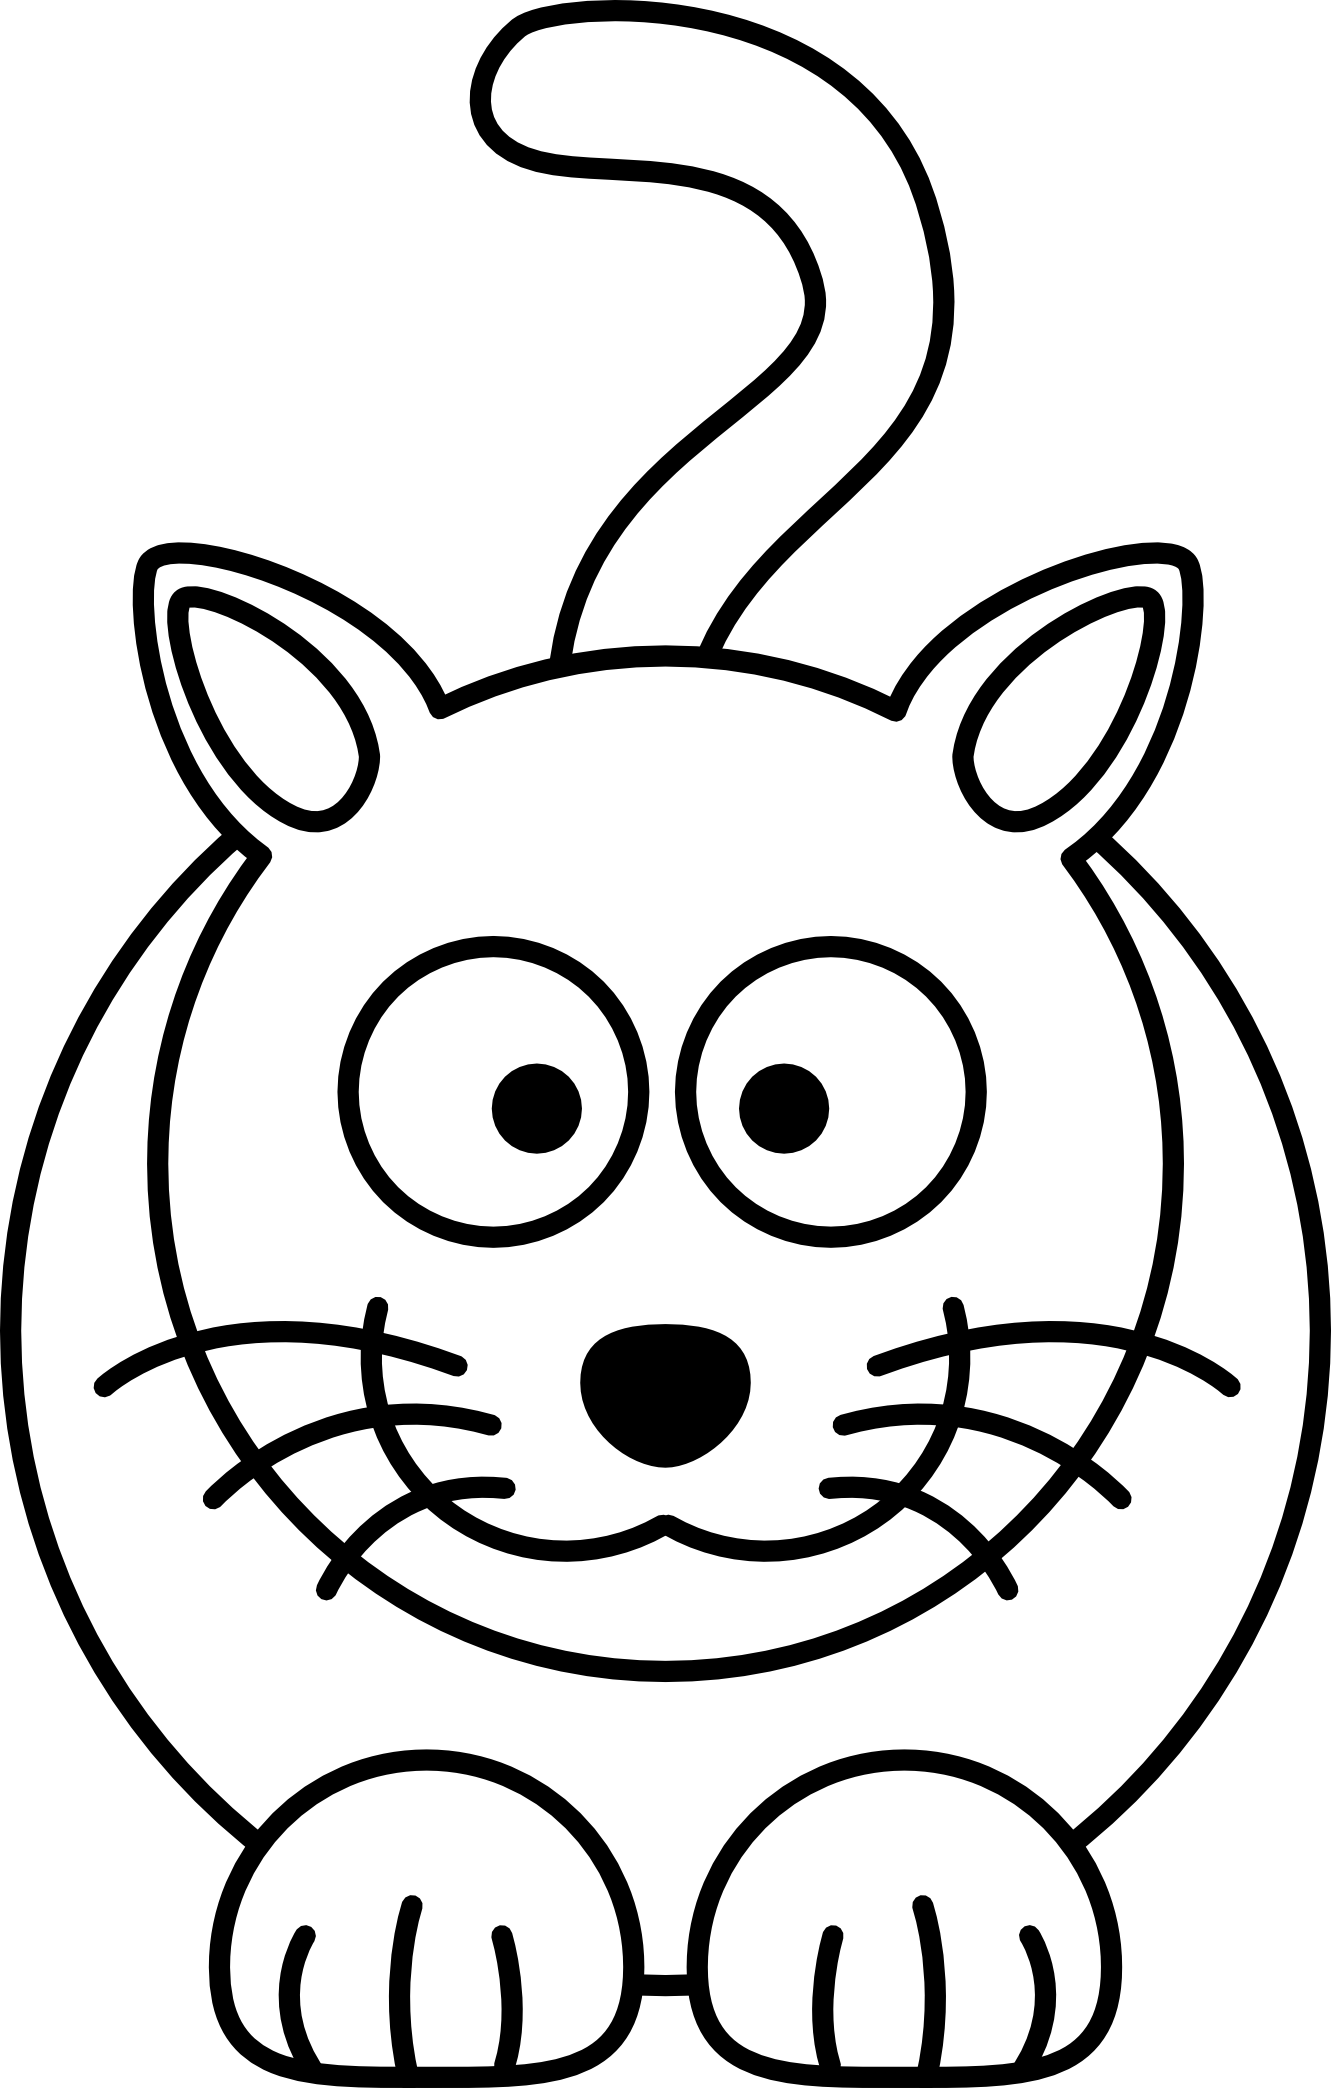 Cat Black White Line Art Coloring Book Colouring Drawing Px ...